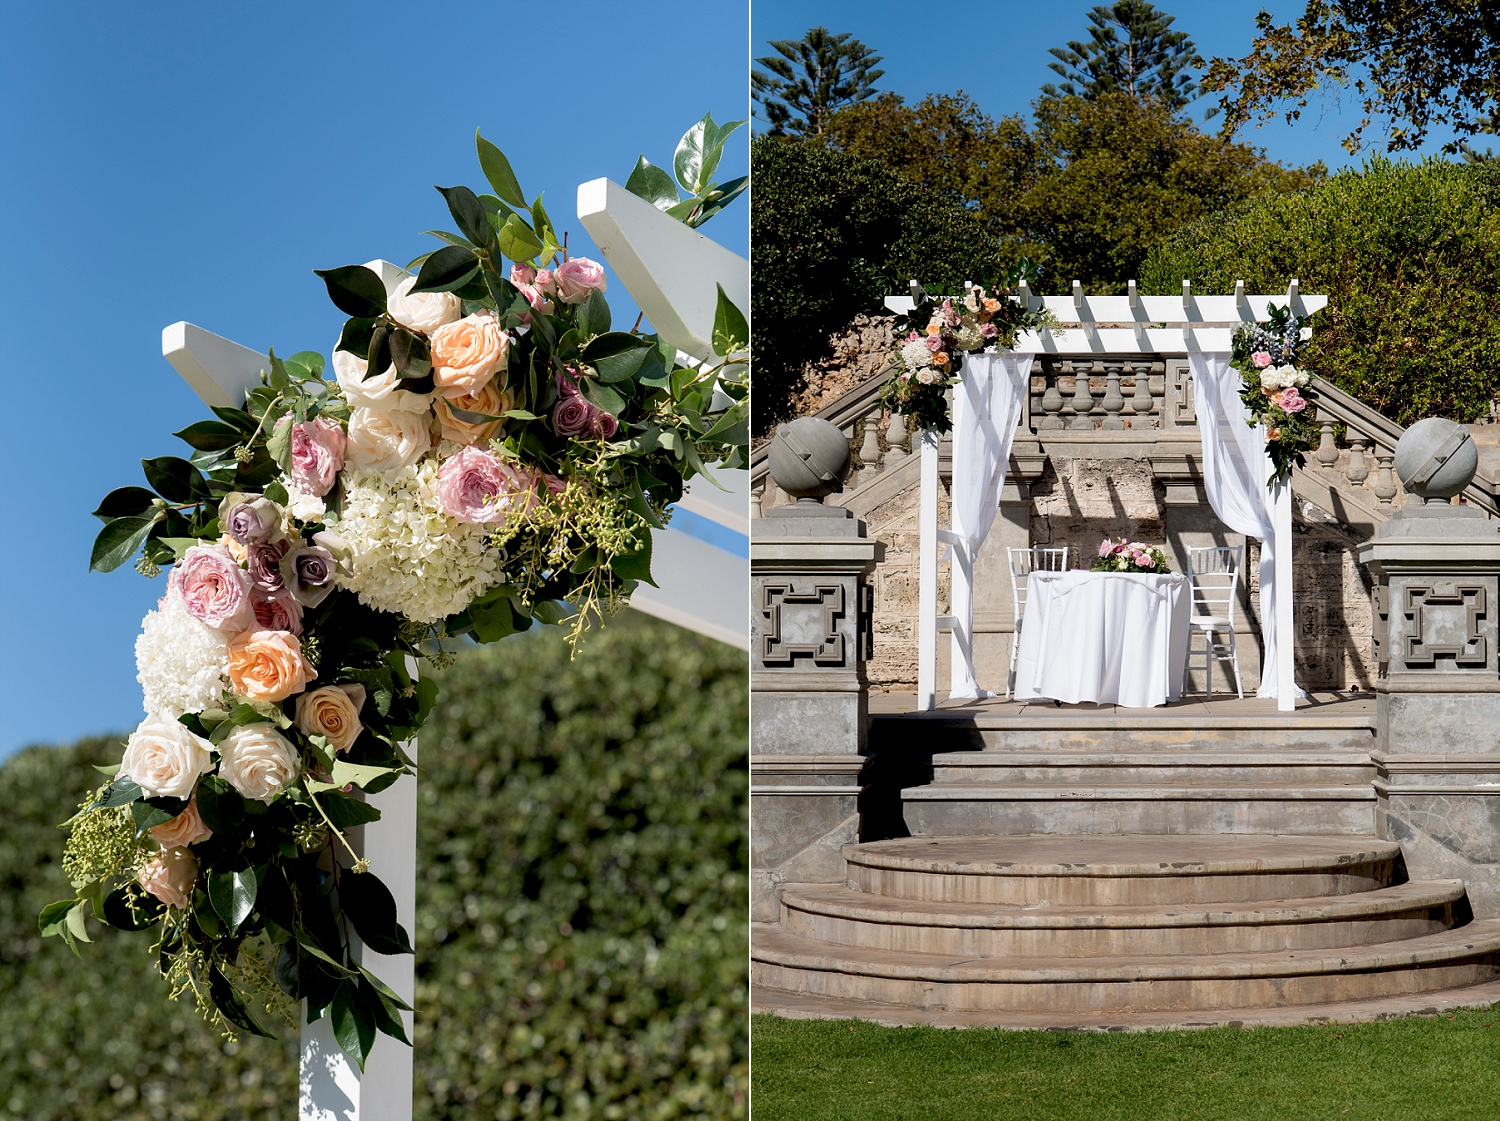 20_cottesloe civic centre wedding perth with ceremony on main lawn steps.jpg